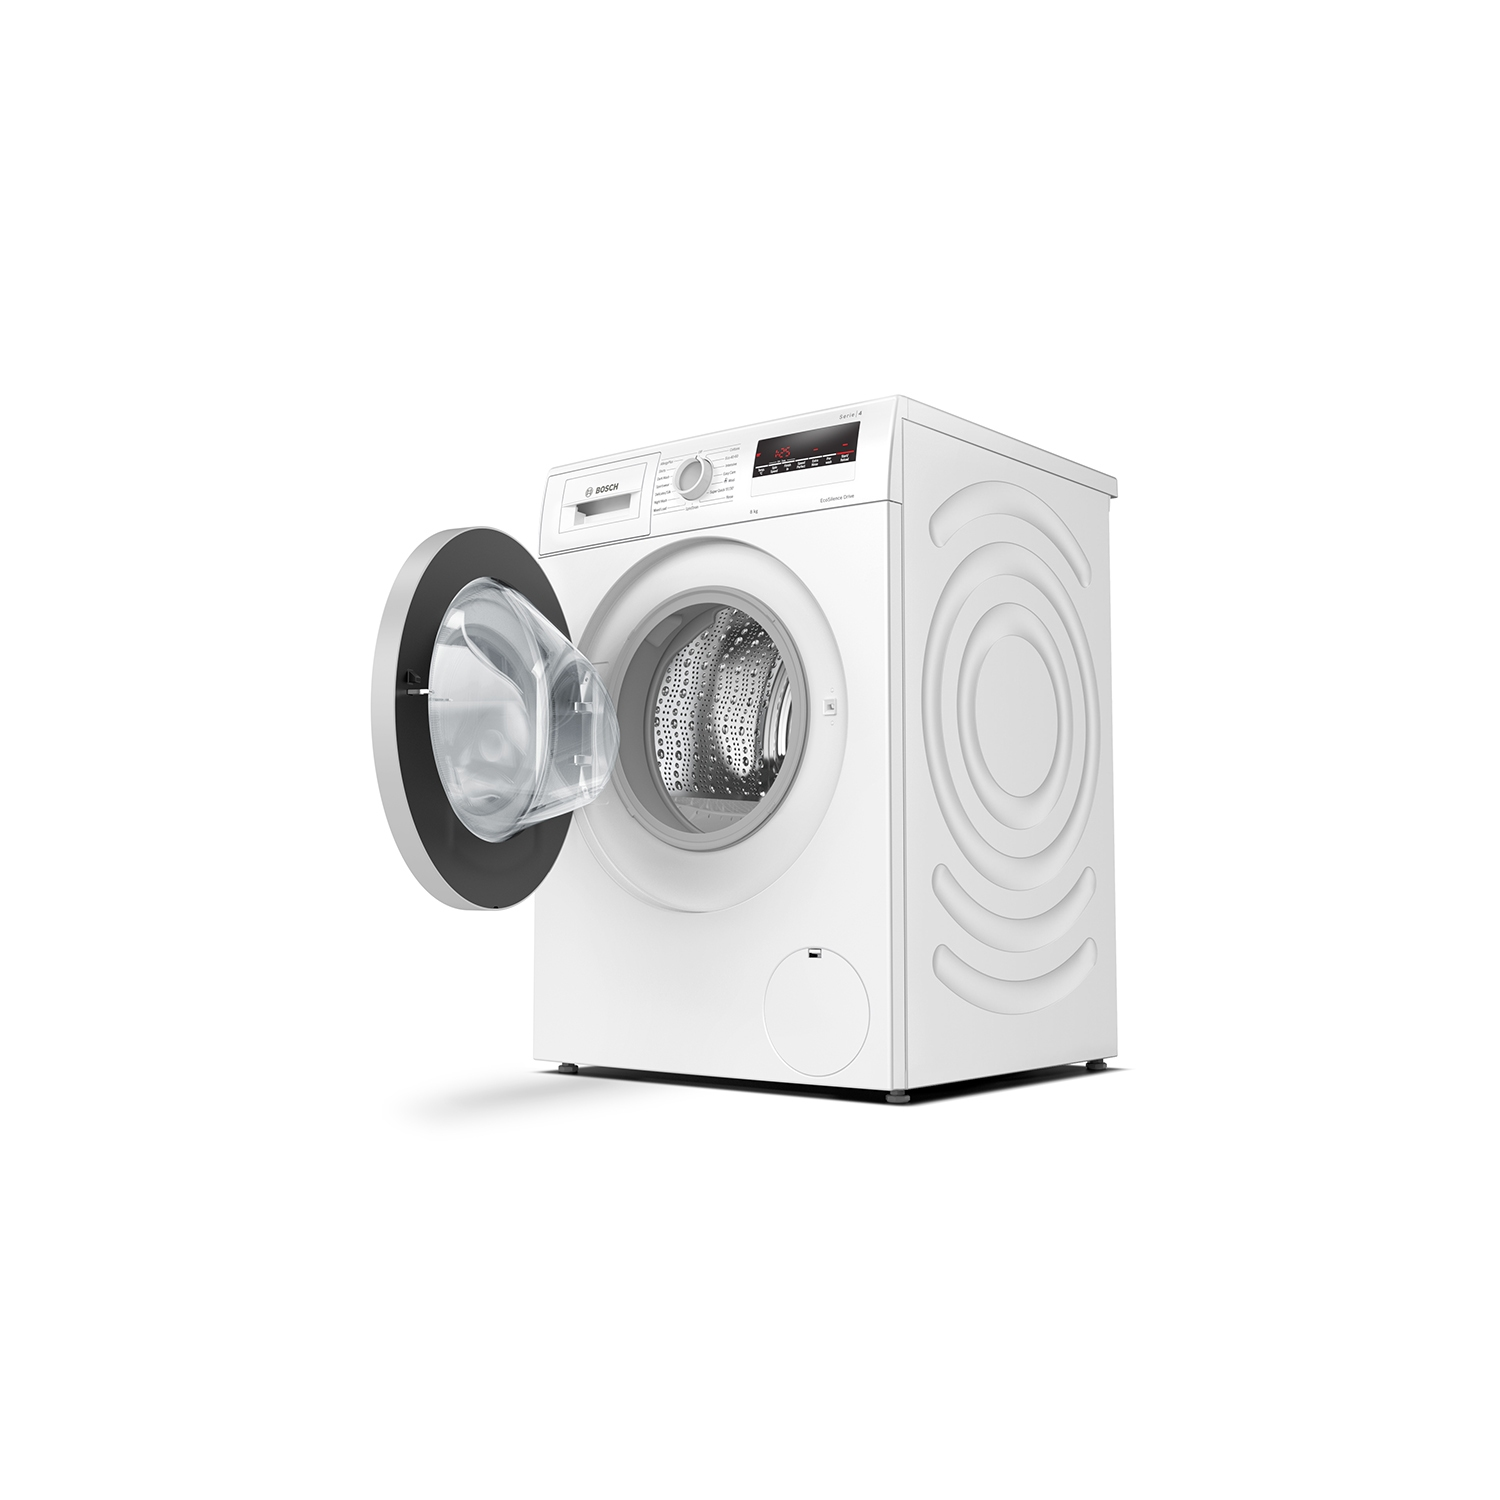 Bosch 8kg 1400 Spin Washing Machine - White - A+++ Rated - 3